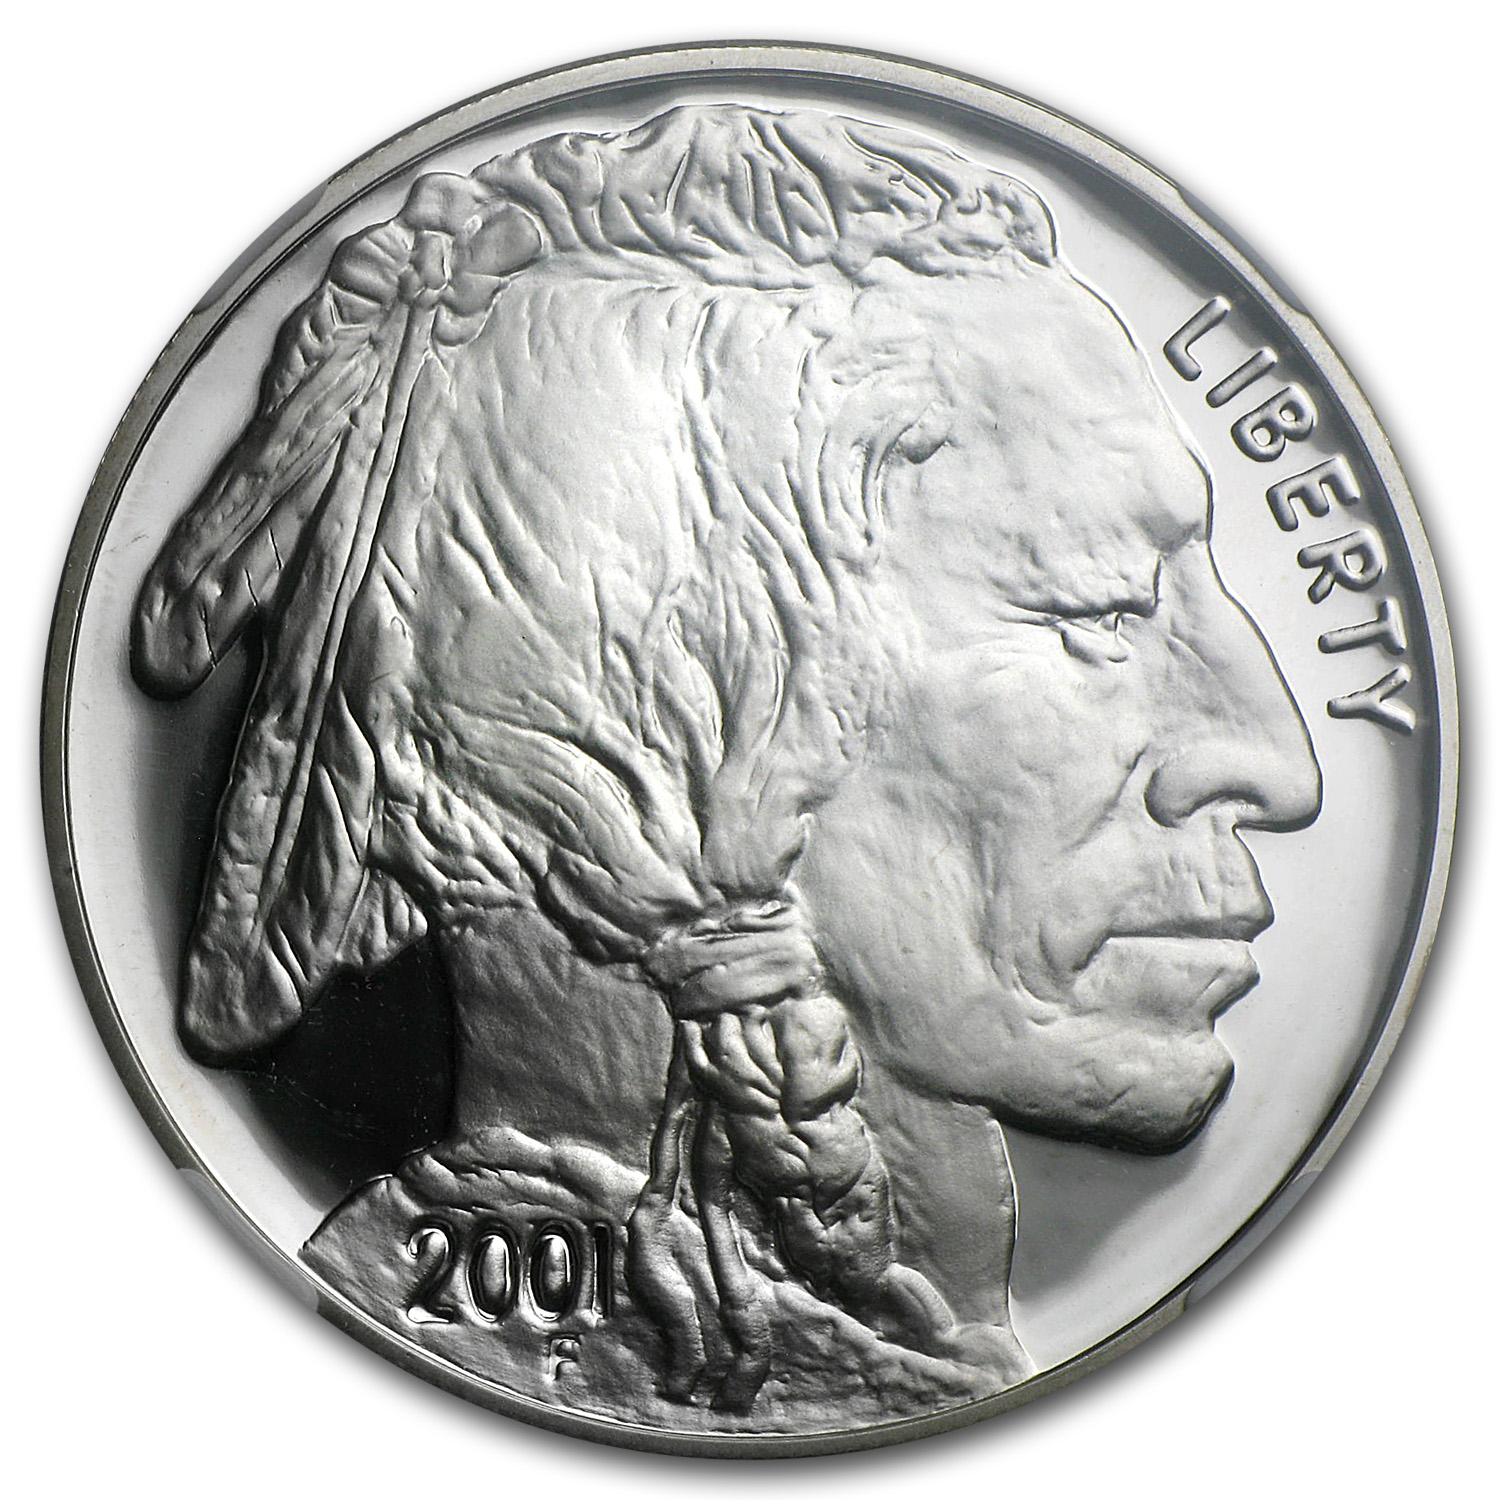 2001-P Buffalo $1 Silver Commemorative PF-70 NGC